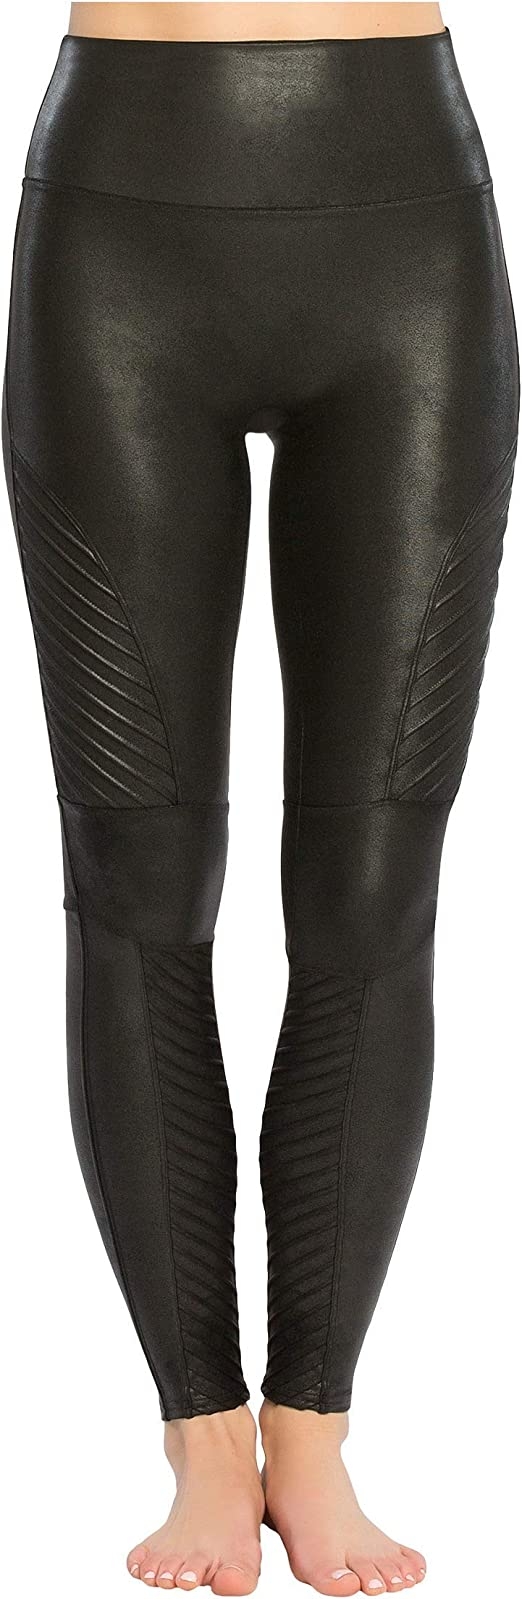 Spanx Moto Control faux leather black shaping leggings with tummy control